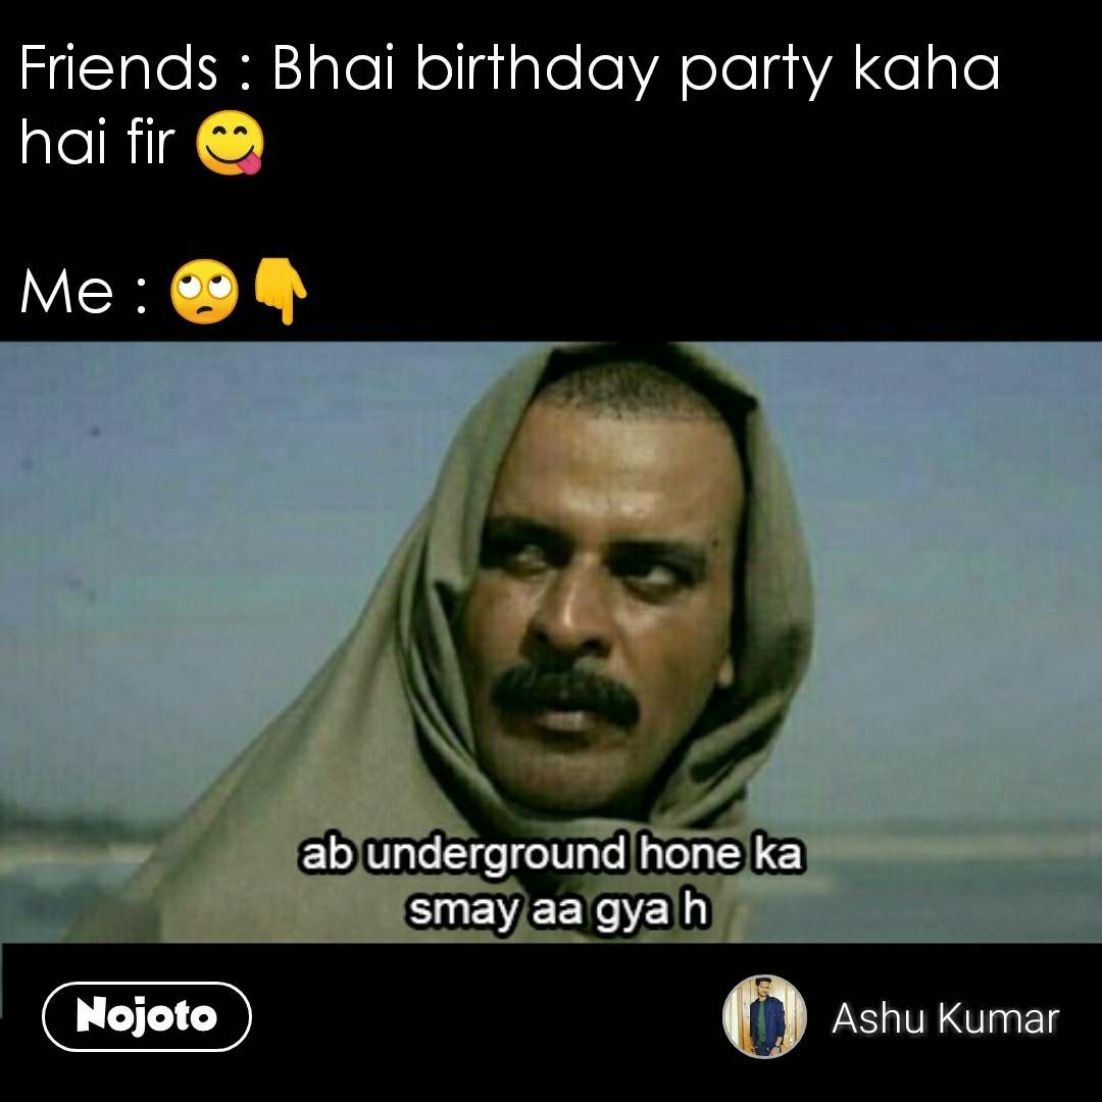 Funny Hindi Memes Friends Bhai Birthday Party Ka Nojoto Within The Birthday Part Bhai Birthday Friends Funn Funny Pictures For Kids Memes Sarcastic Memes